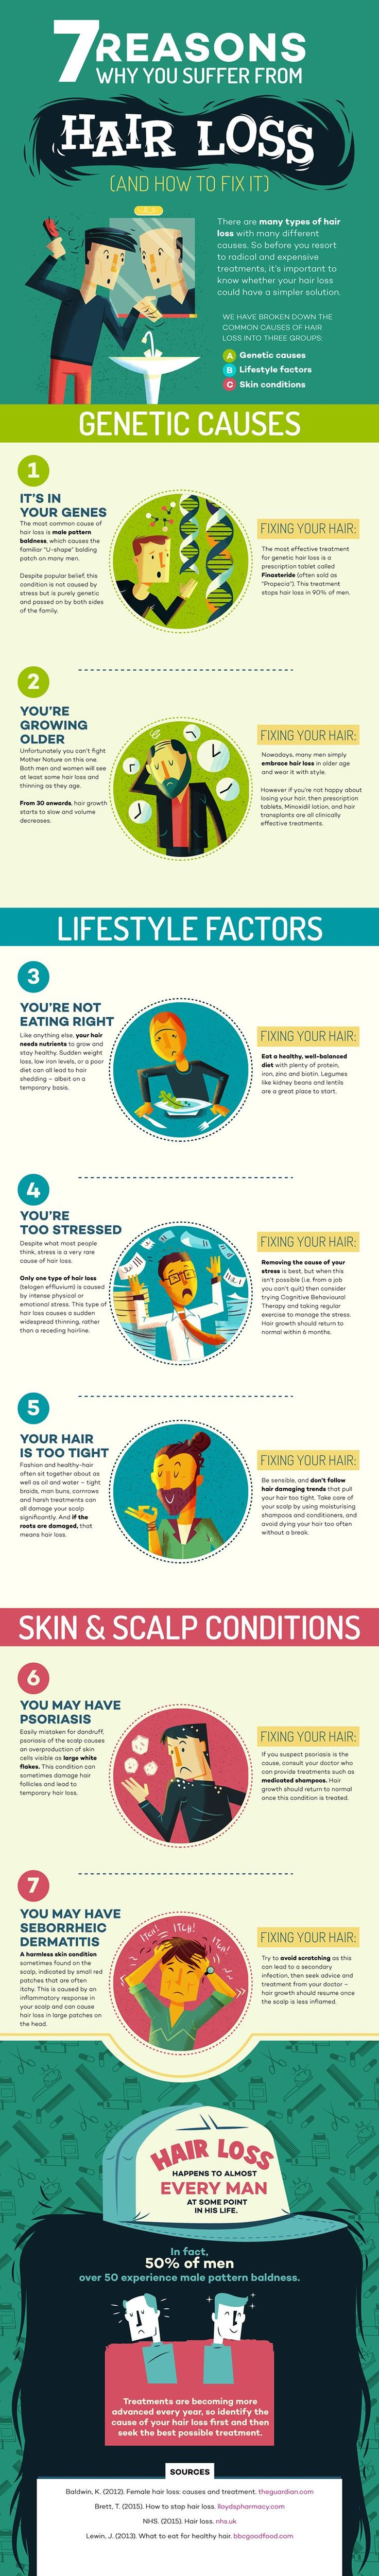 Hair loss happens to almost every man at some point in his life. Identify the cause of your hair loss first and then seek the best possible treatment.